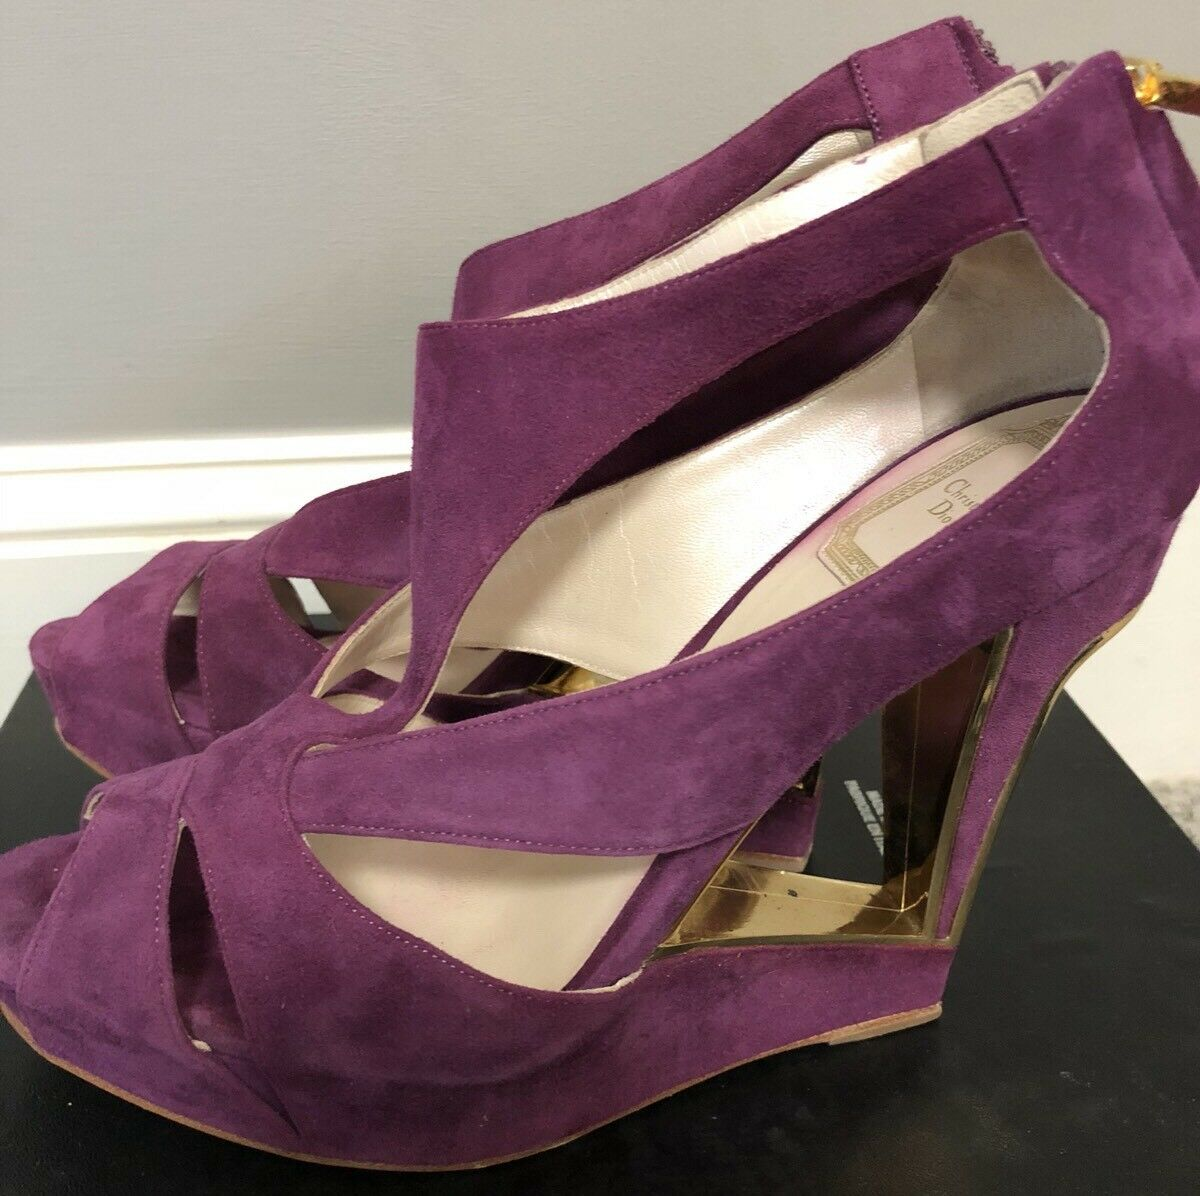 Stunning lila Couture Suede Sandals by Christian Dior Gold heel sz 38 US 8